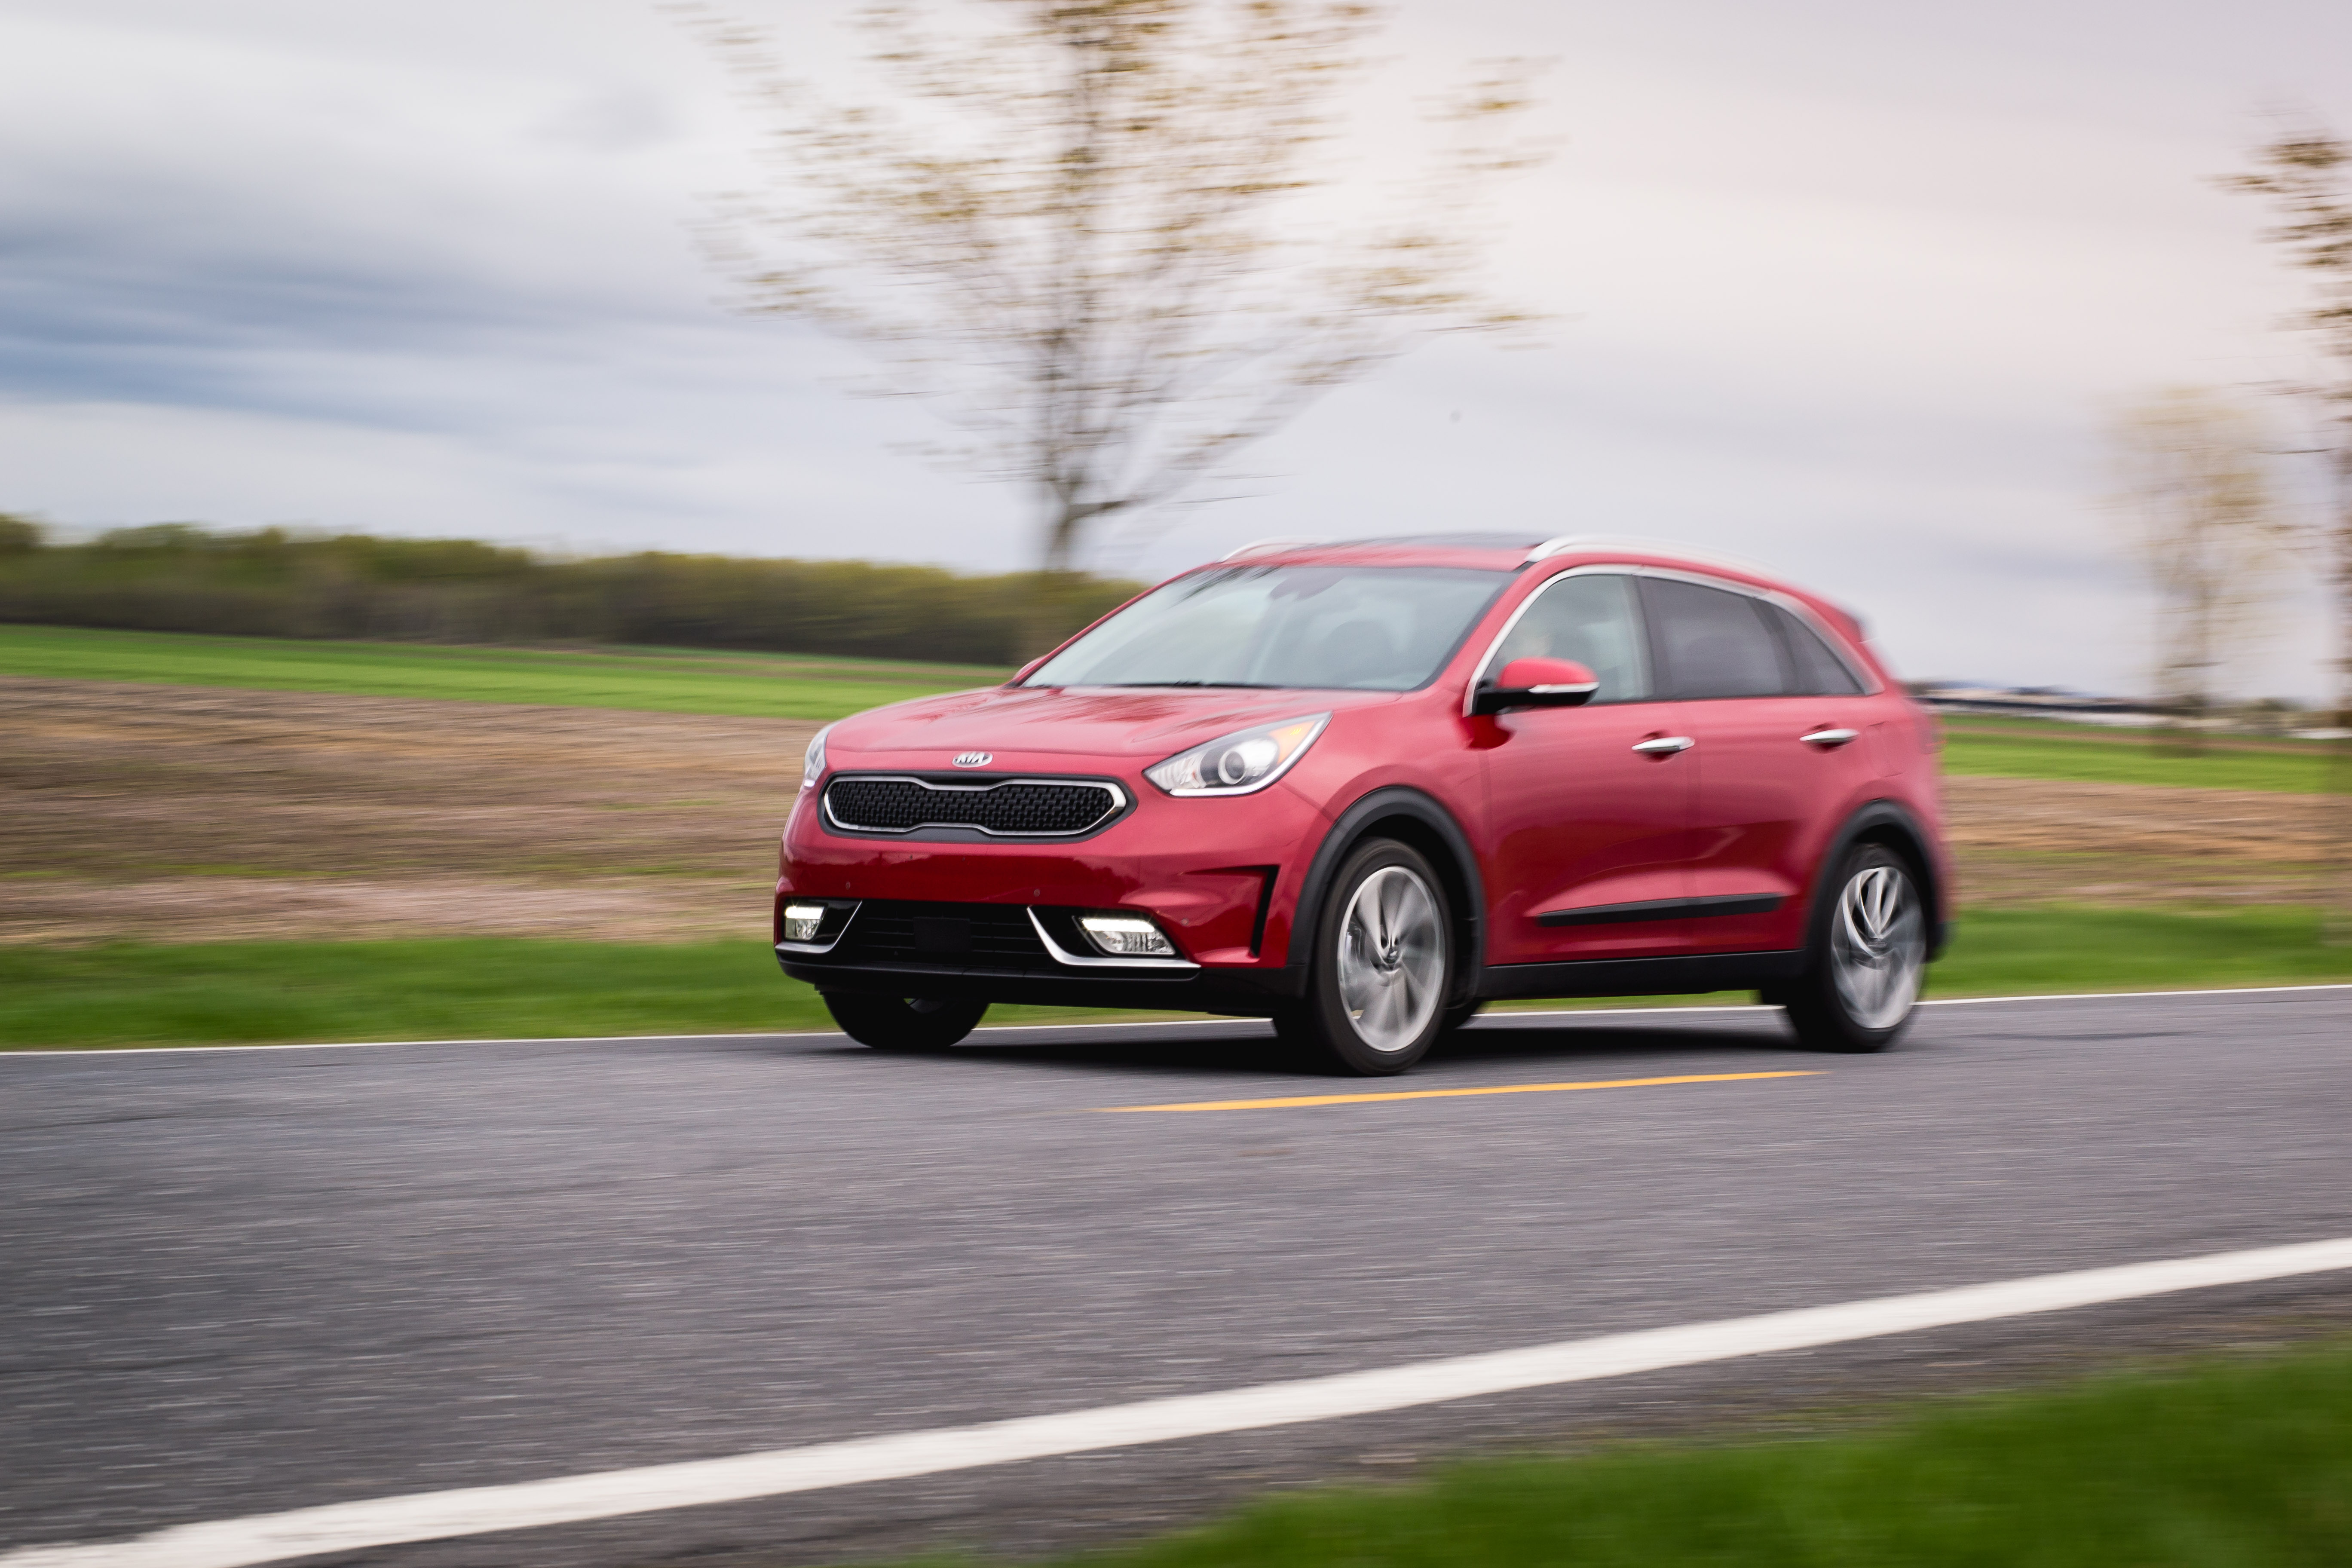 2017 Kia Niro What s A Crossover Supposed To Be